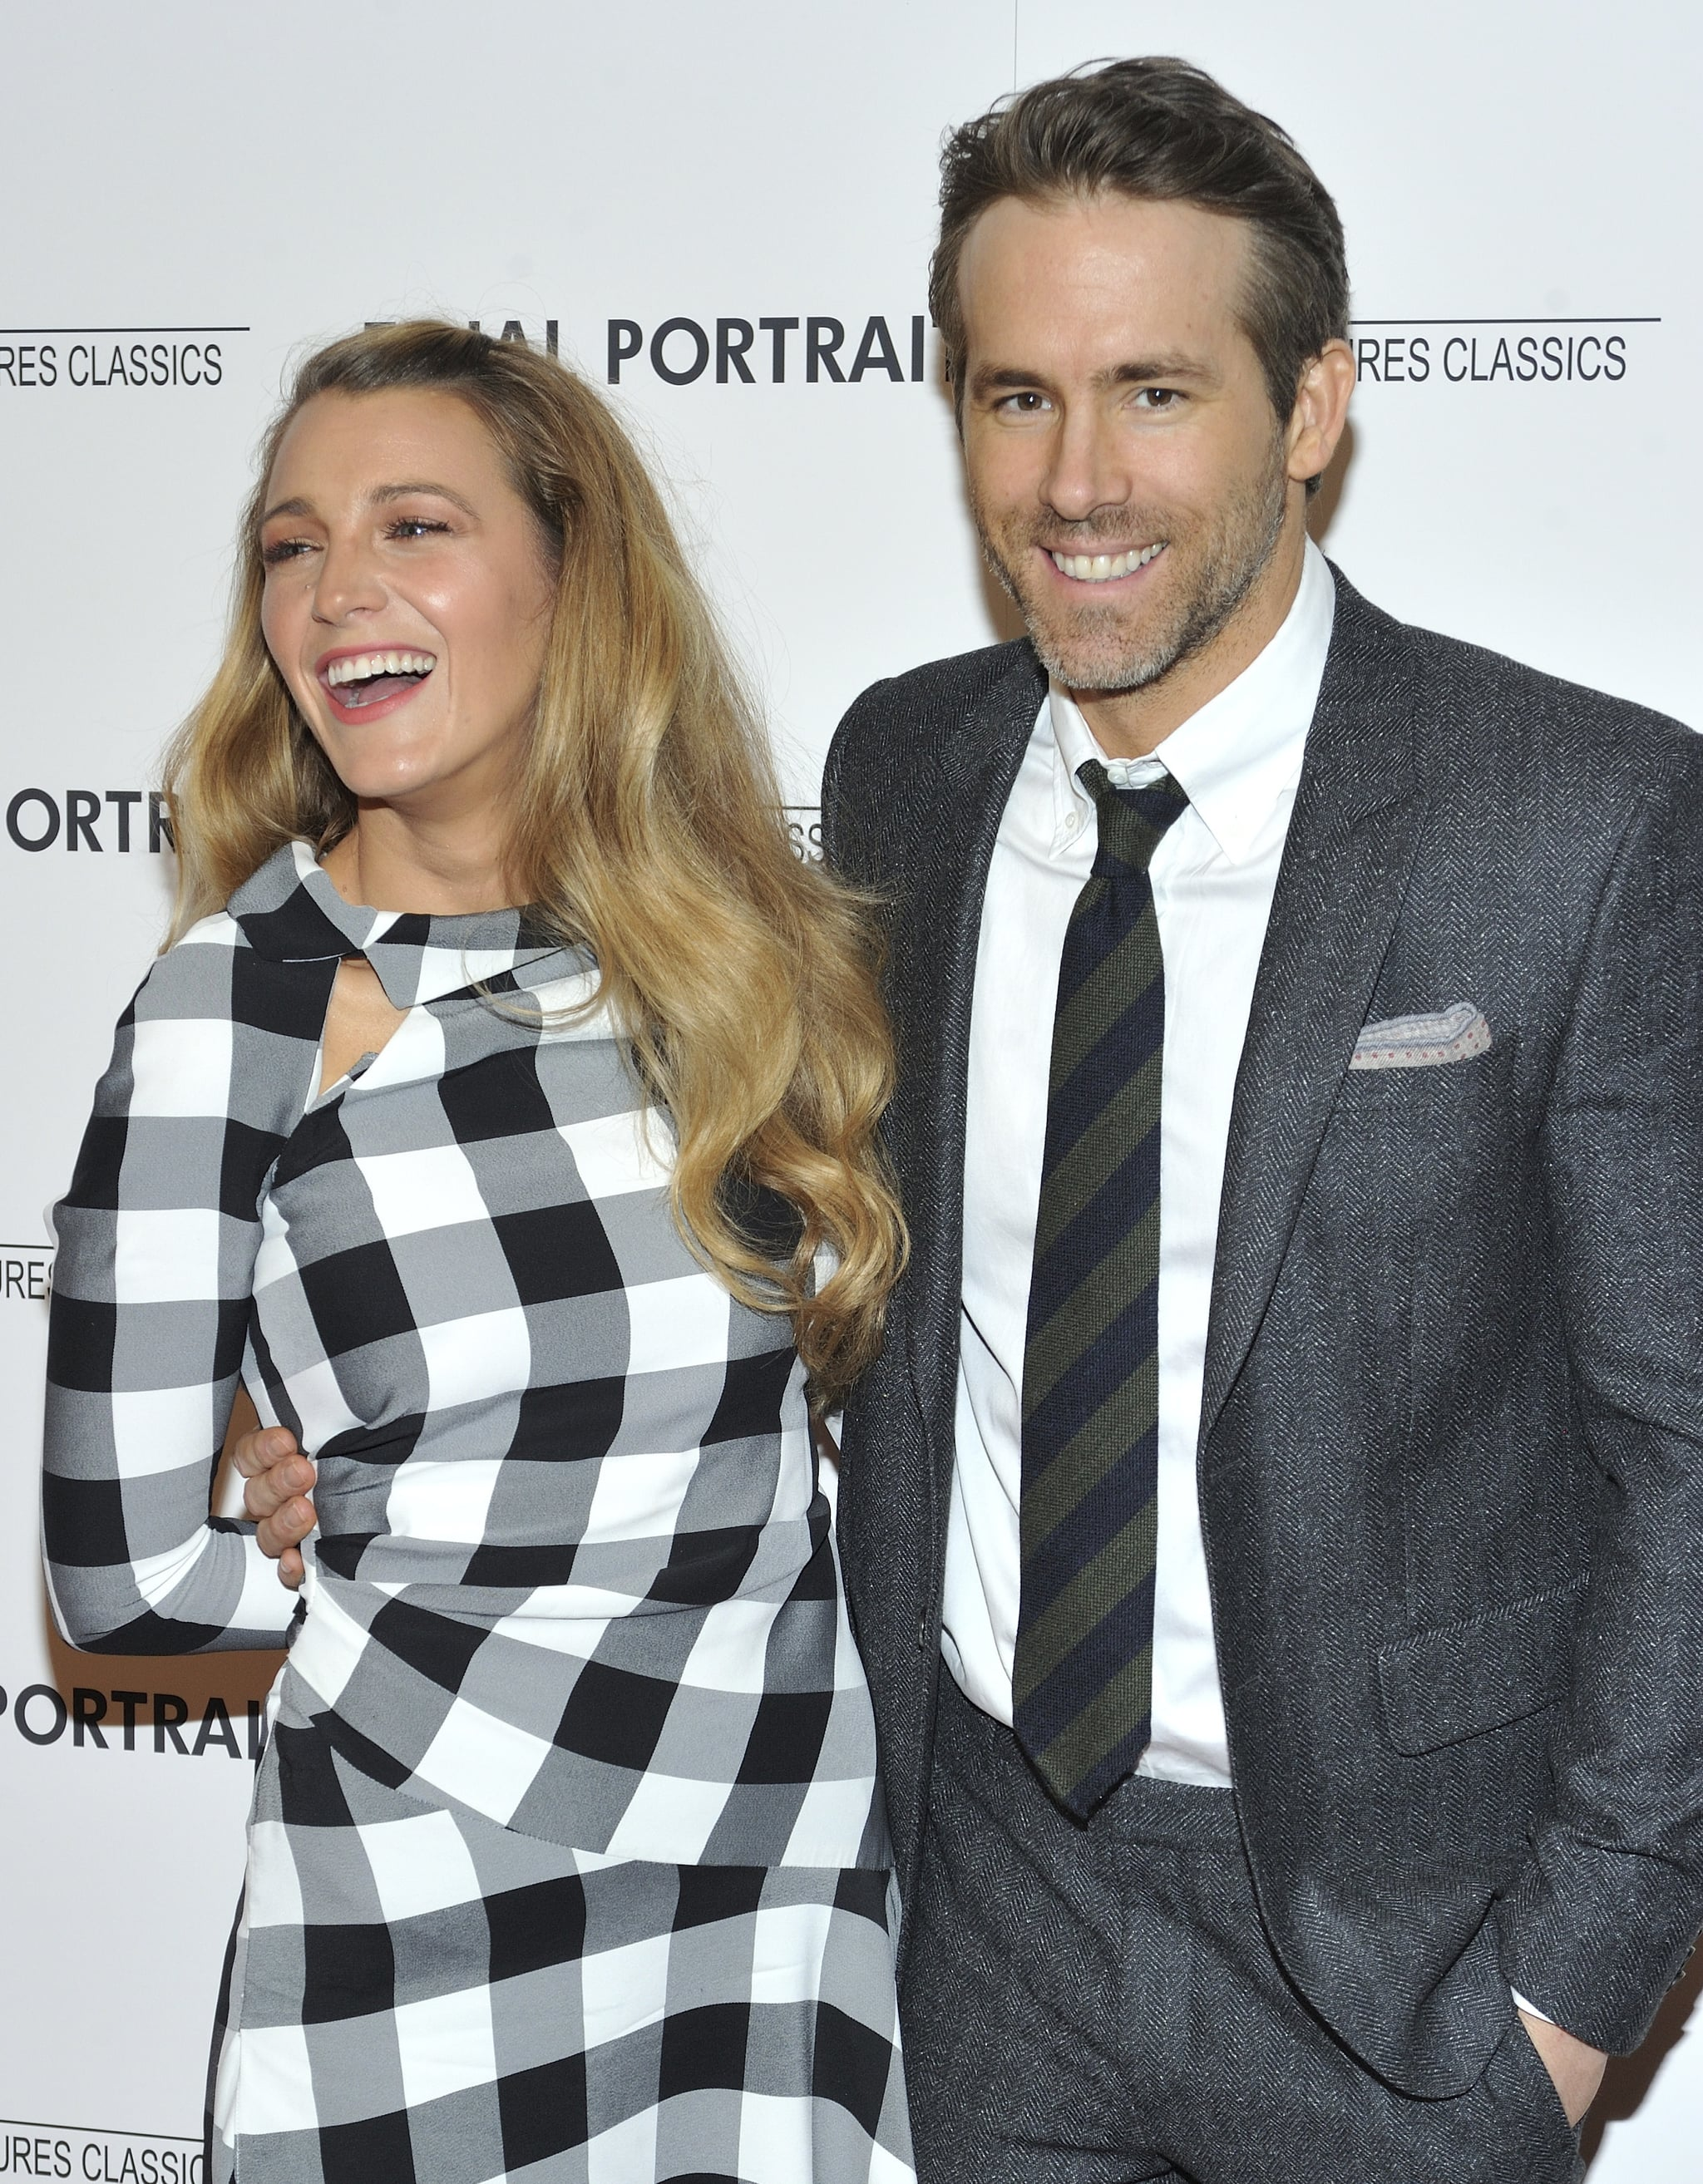 L-R: Actors Blake Lively and Ryan reynolds attend a special screening of